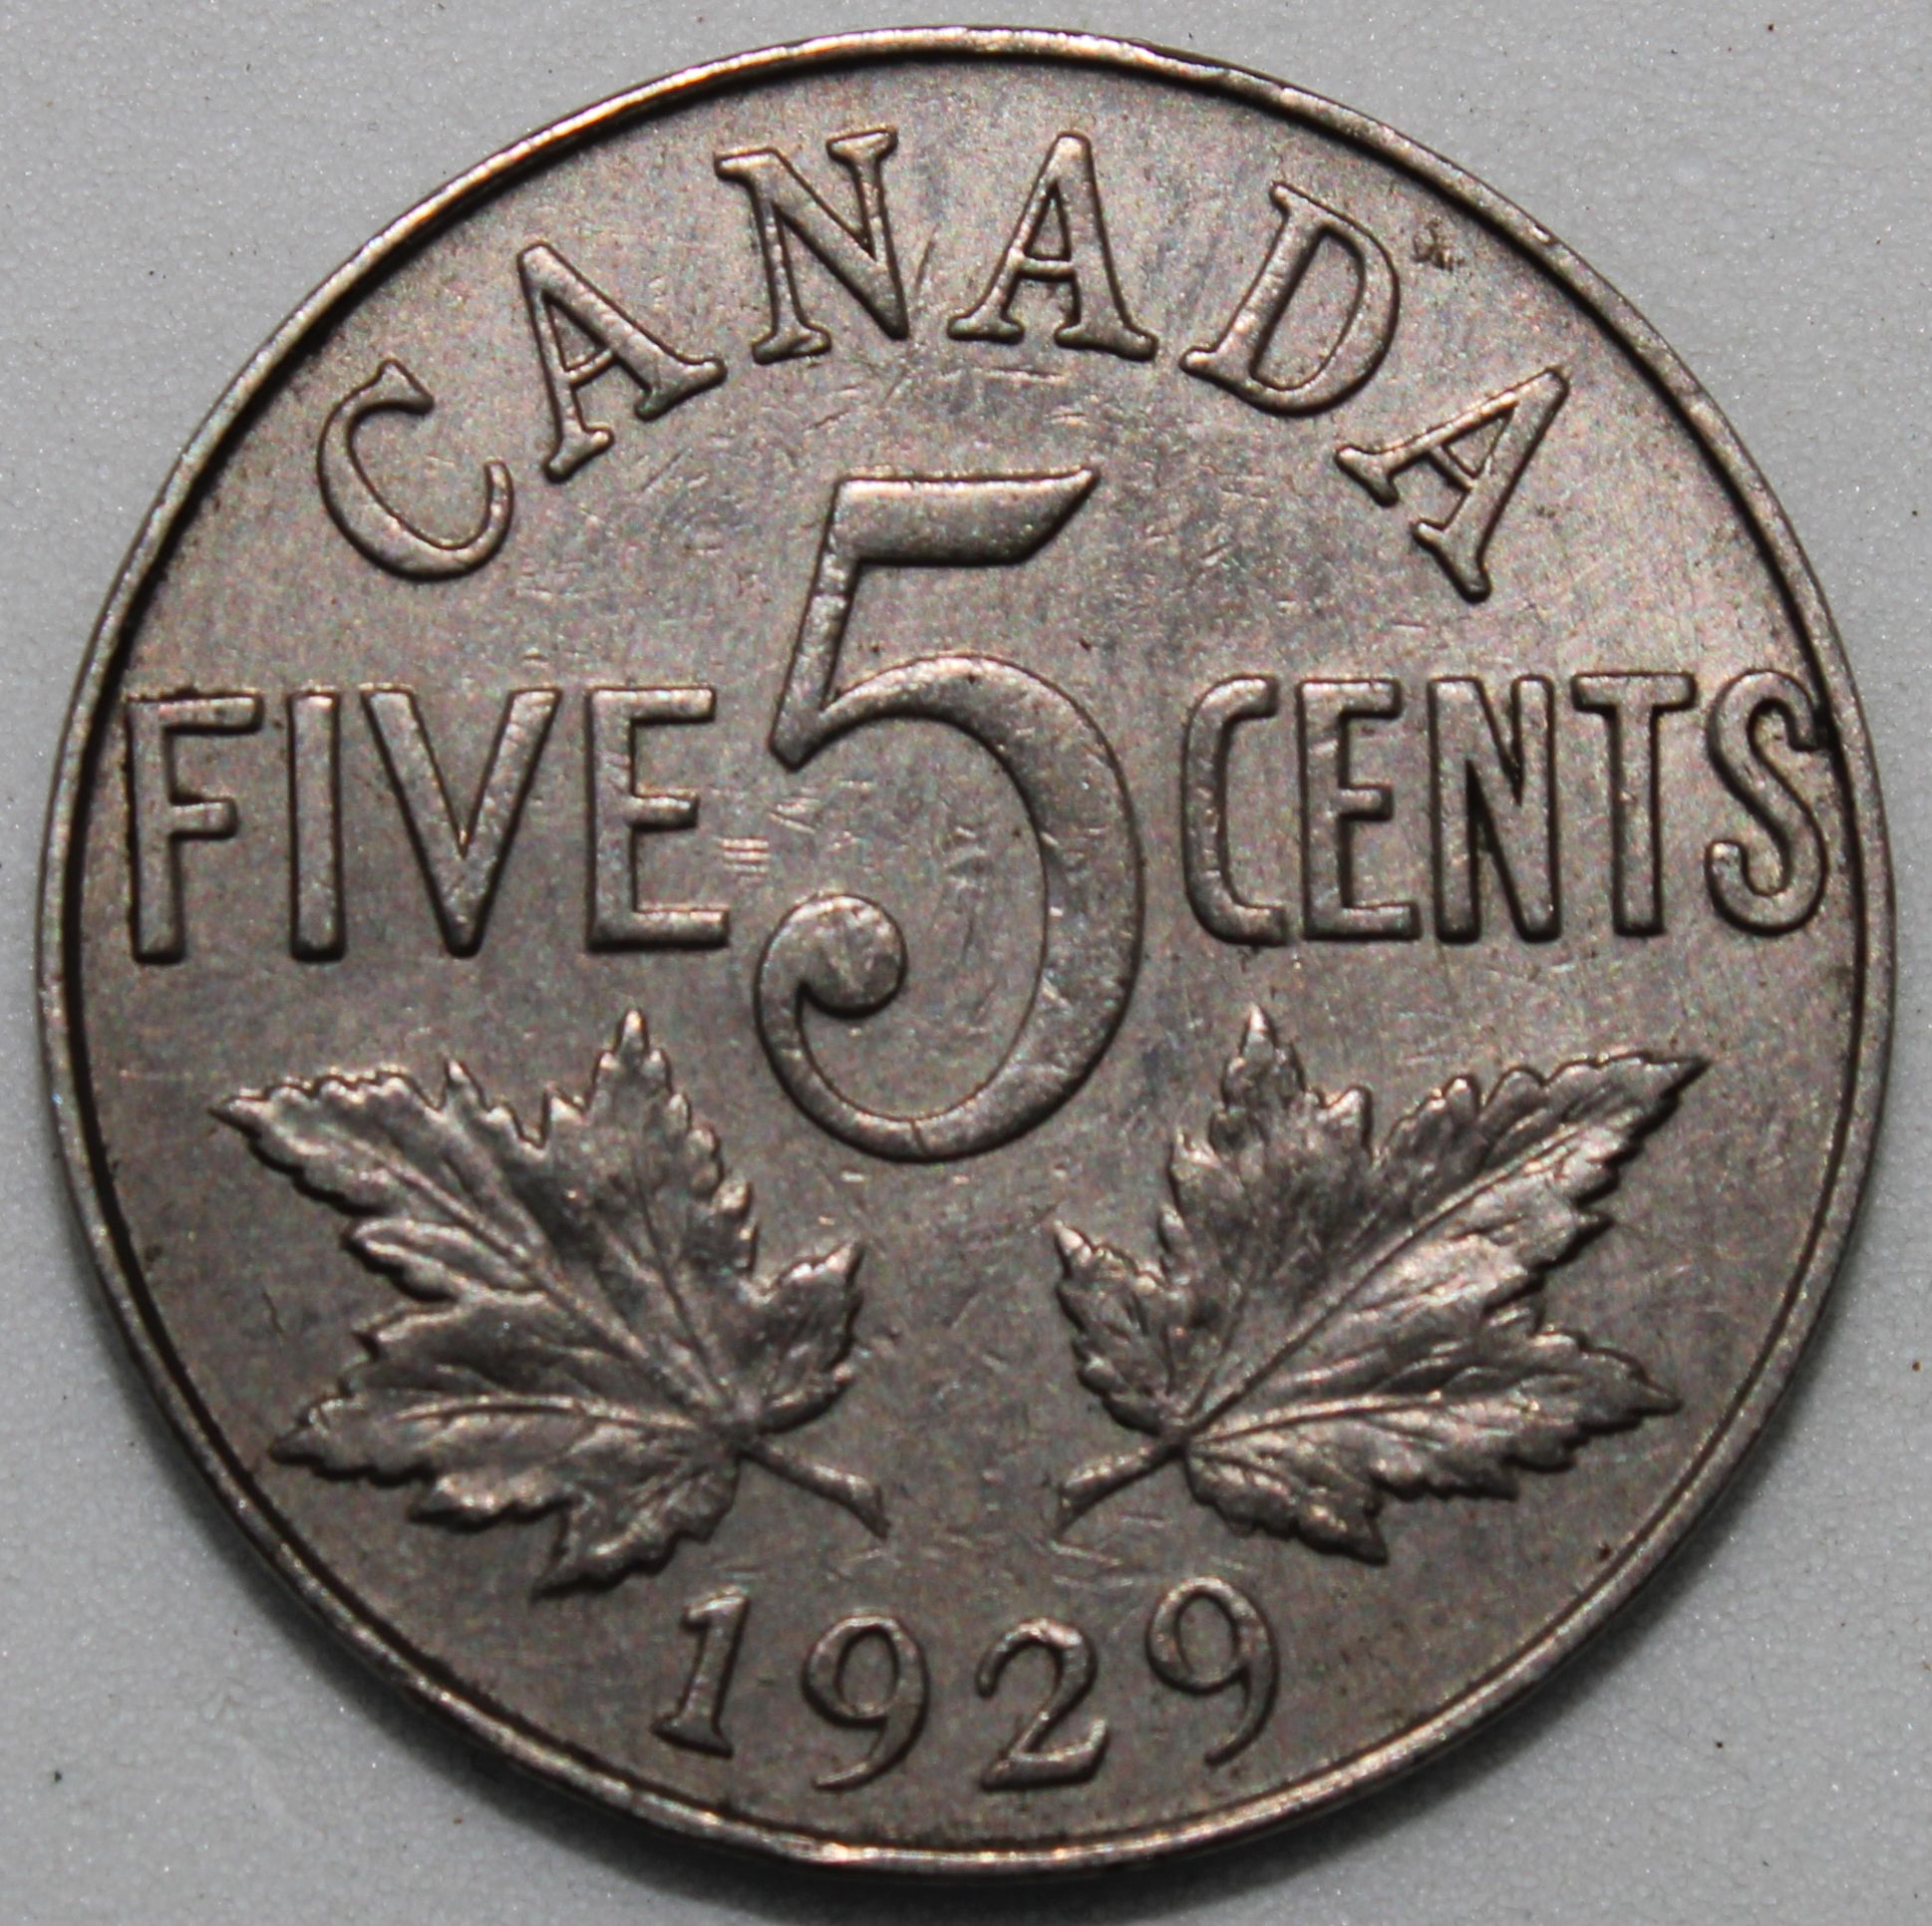 1929 Canada 5 Cents Nickel Coins Km Coins Coins 5 Cents Coin Values